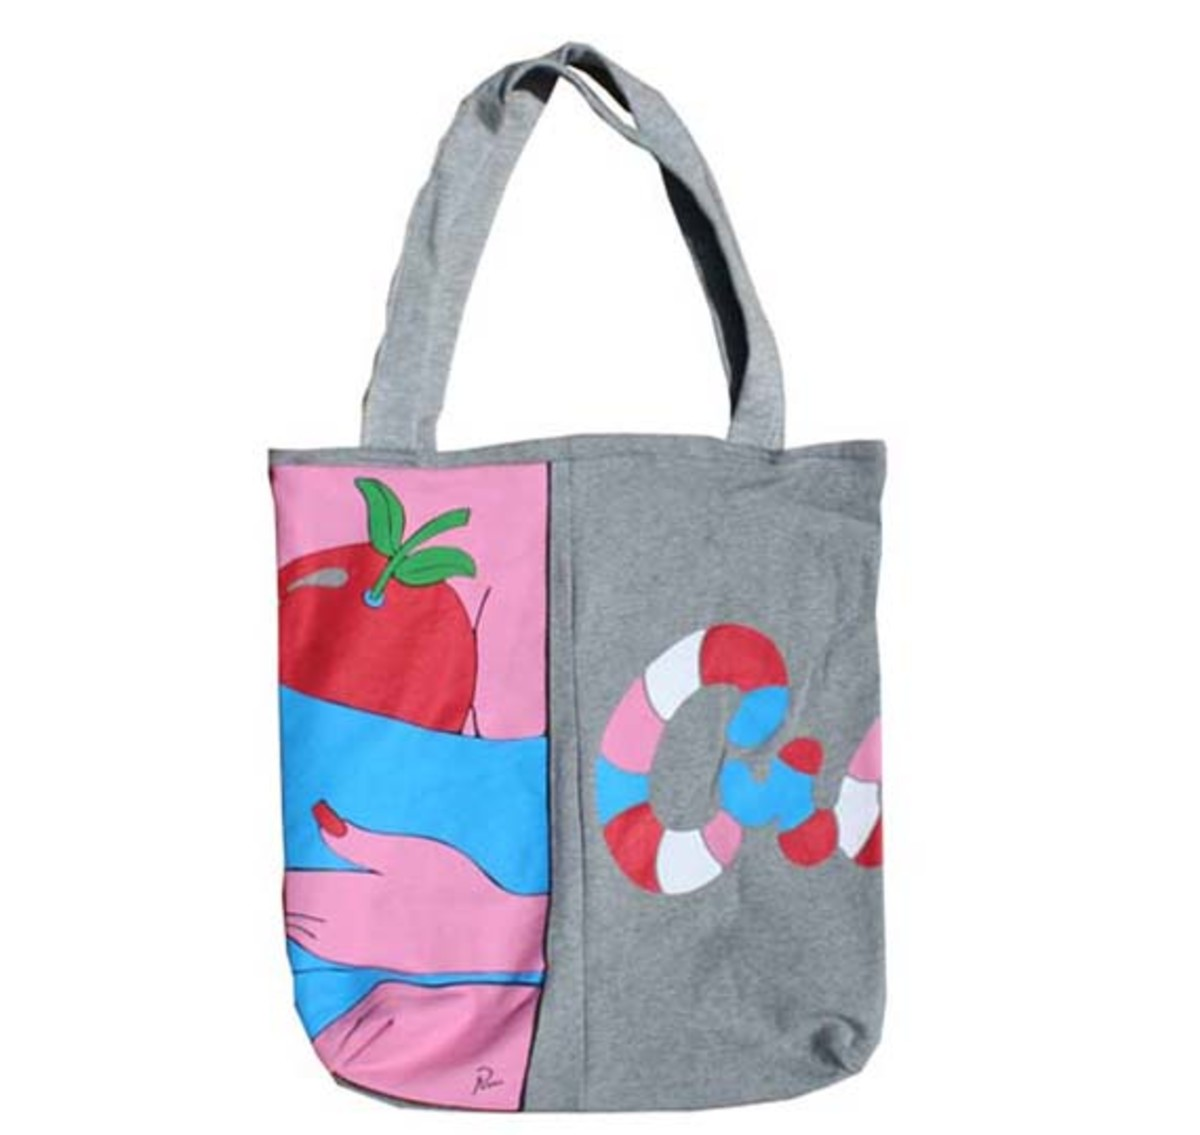 rockwell-summer10-bags-5